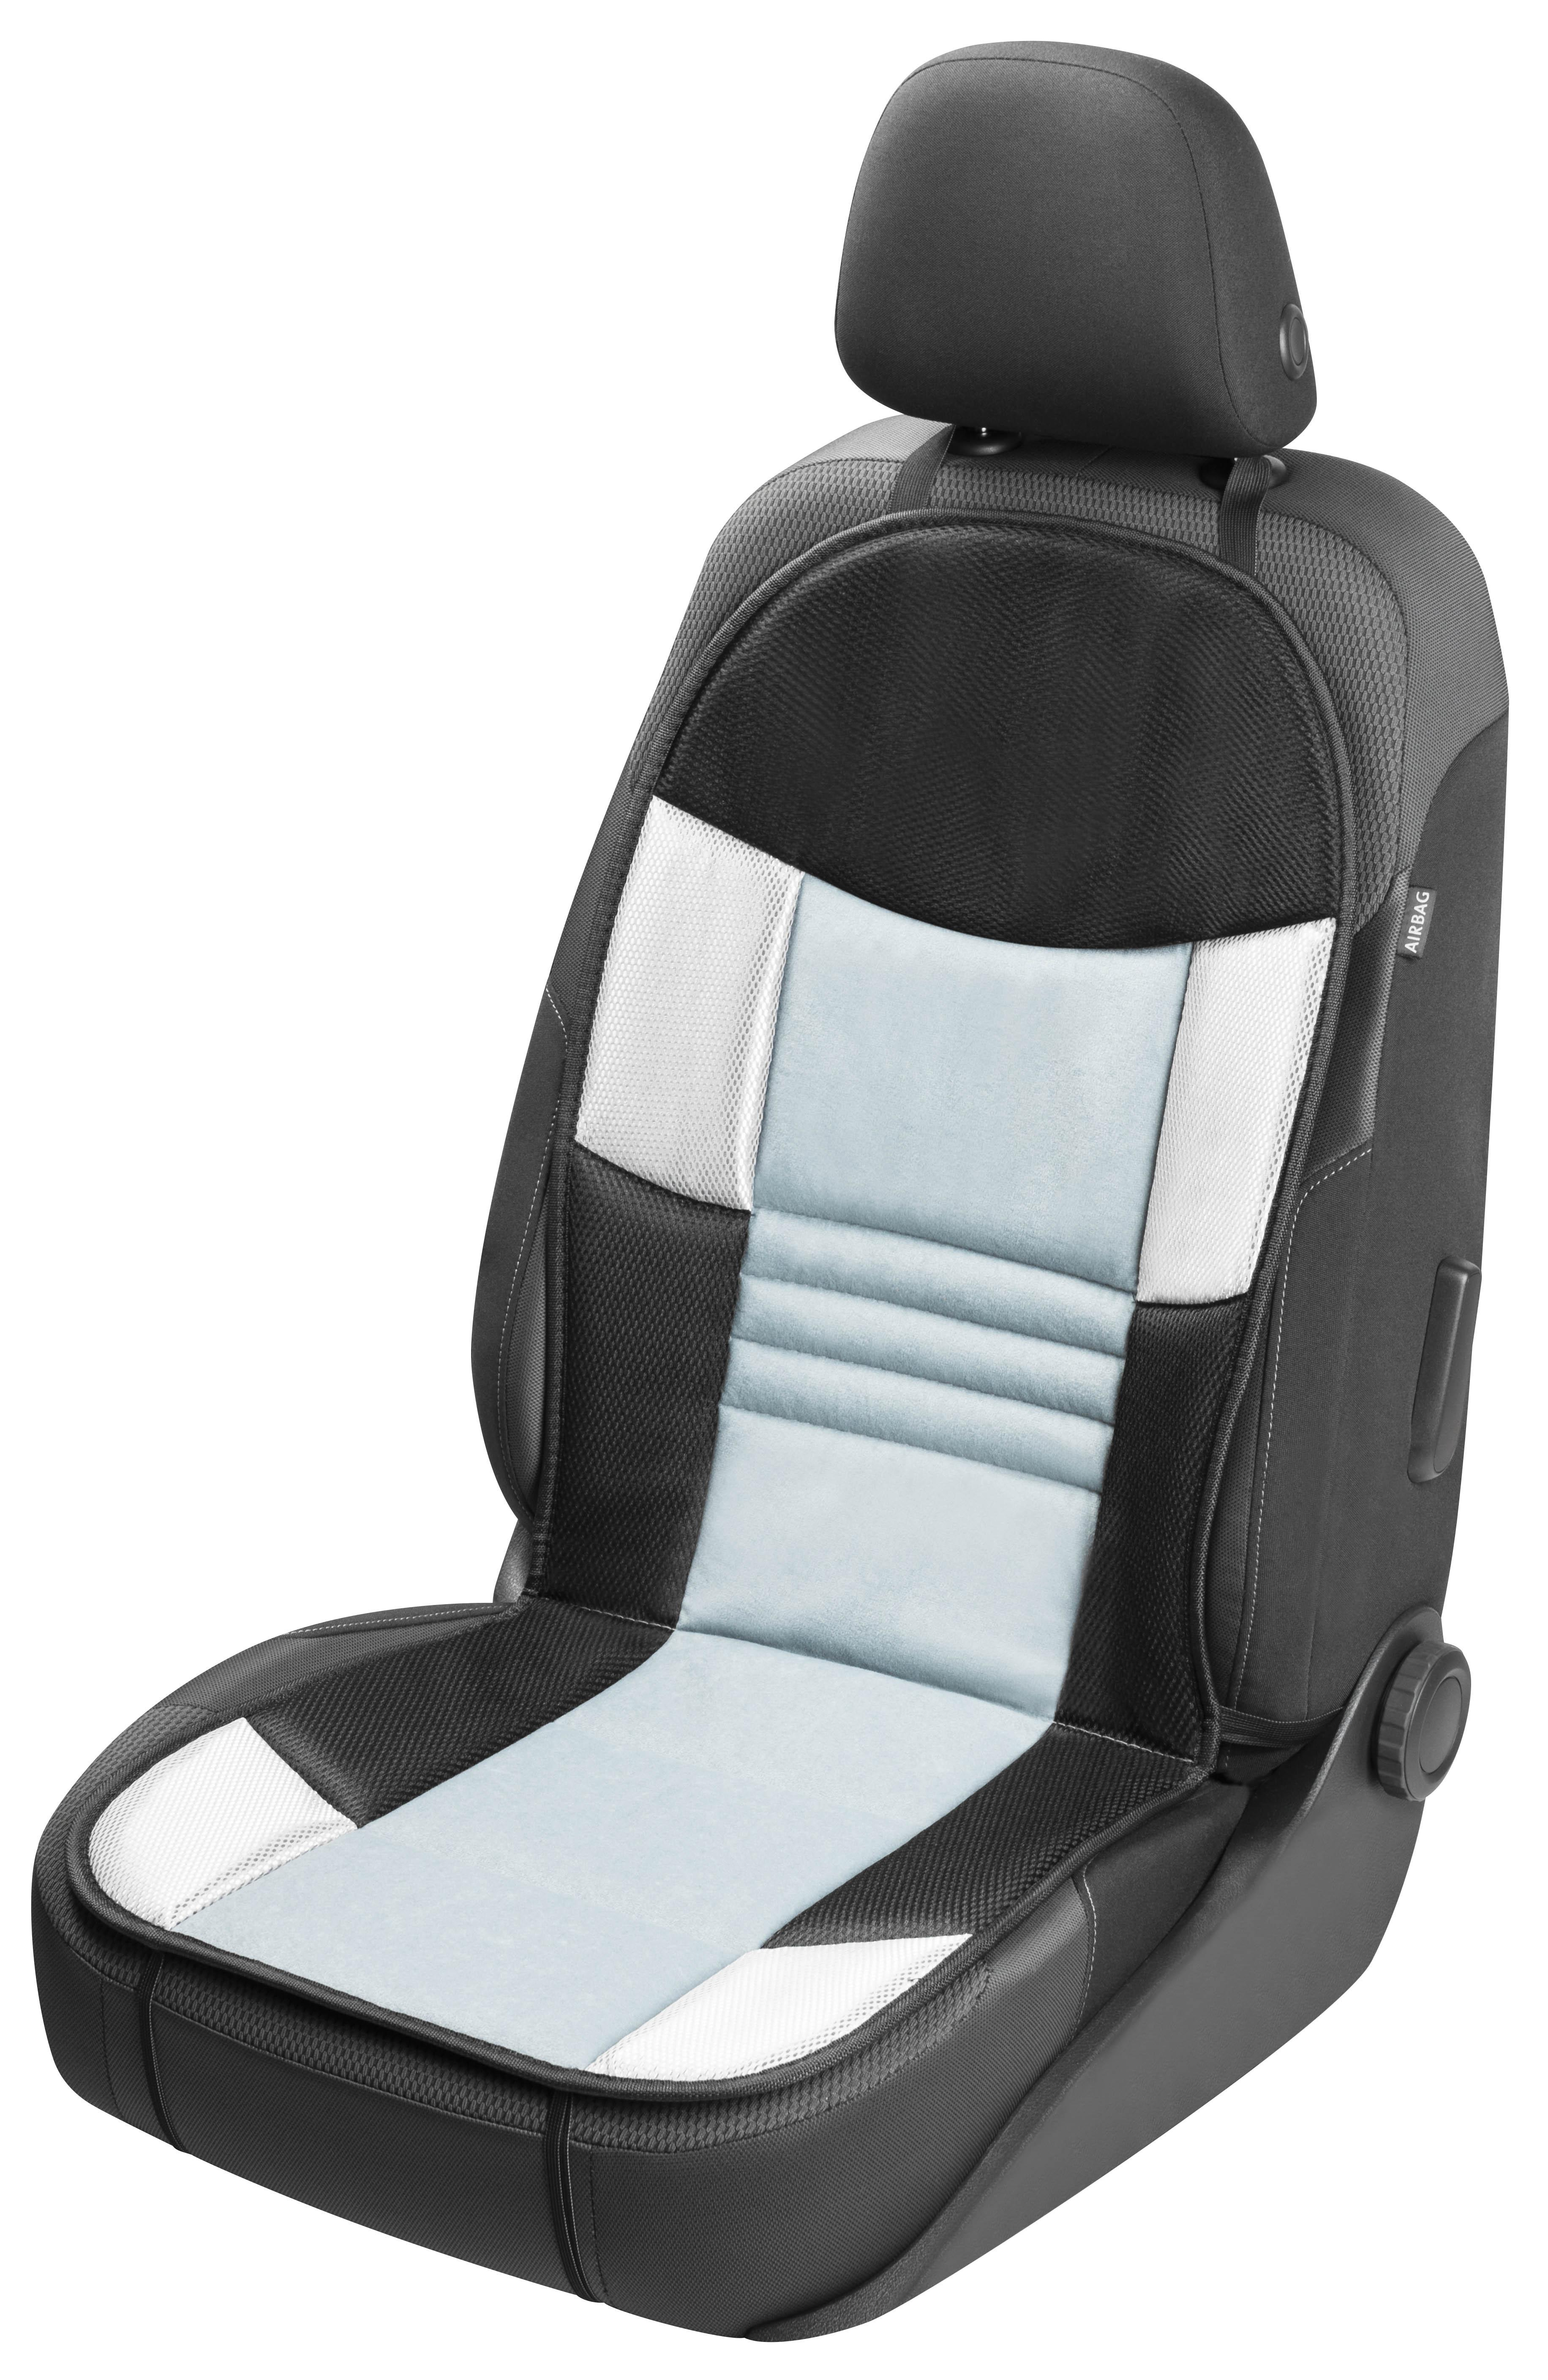 WALSER 11665 Protector asiento coche